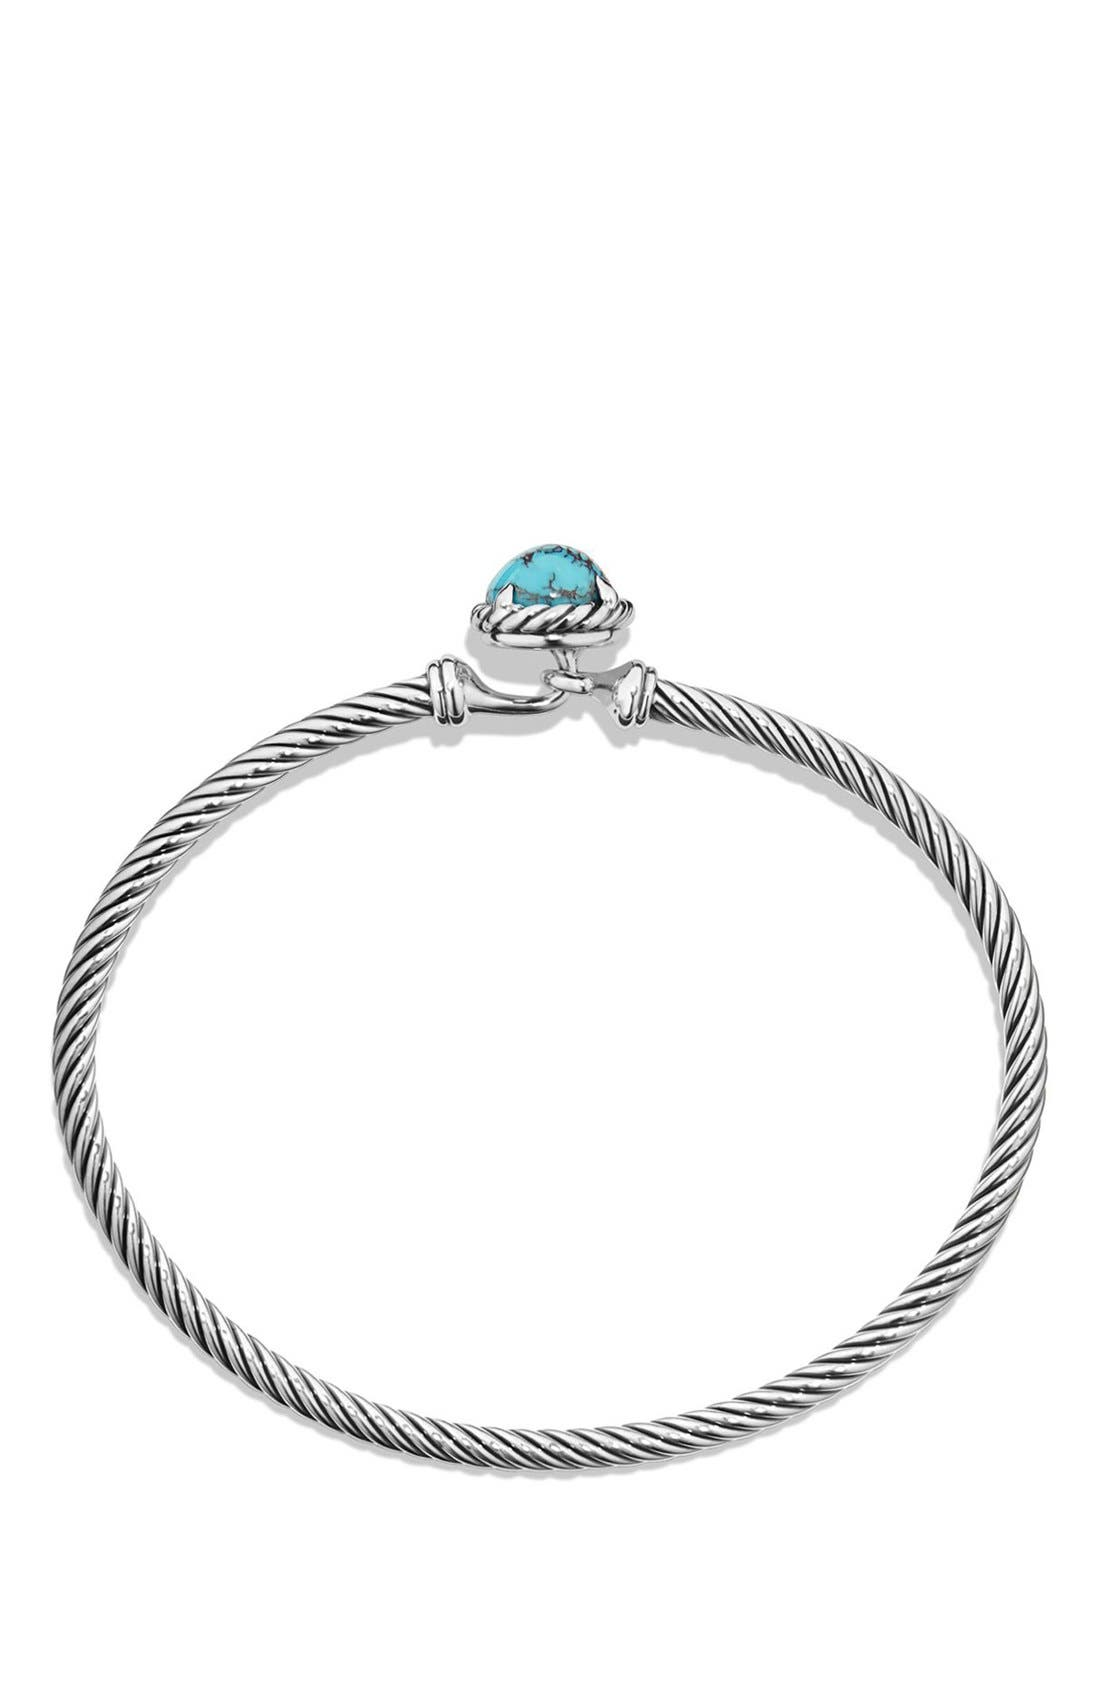 DAVID YURMAN,                             'Châtelaine' Bracelet,                             Alternate thumbnail 2, color,                             SILVER/ CHINESE TURQUOISE